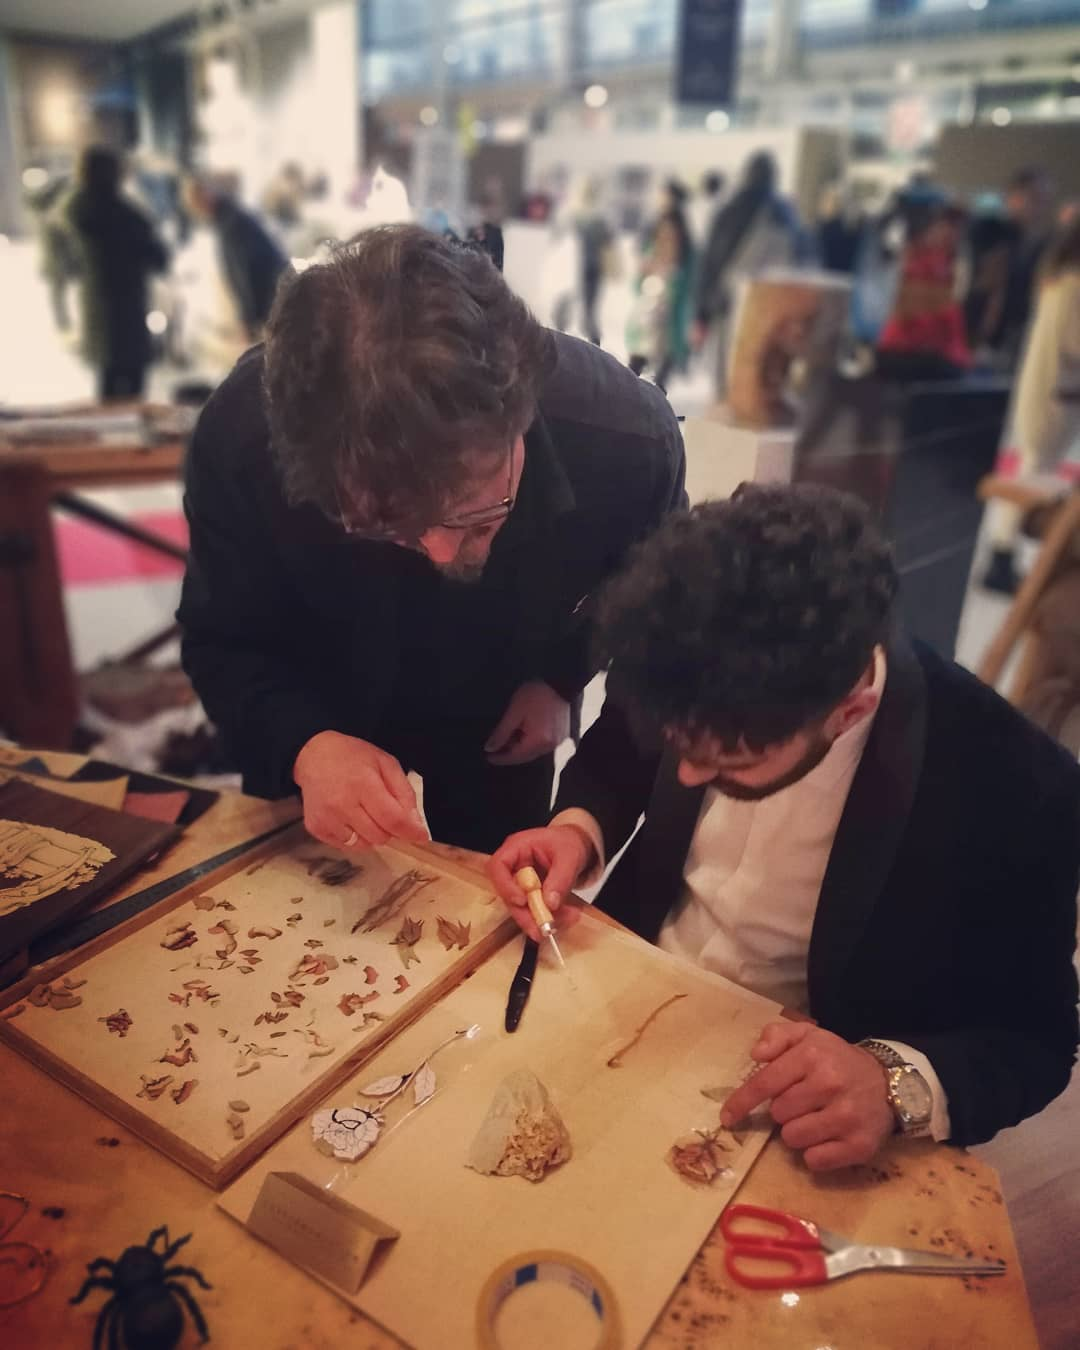 Thinkers and Makers at Maison et Objet 2019 Maison et Objet 2019 Highlights of Maison et Objet 2019 Thinkers and Makers   Covet Group